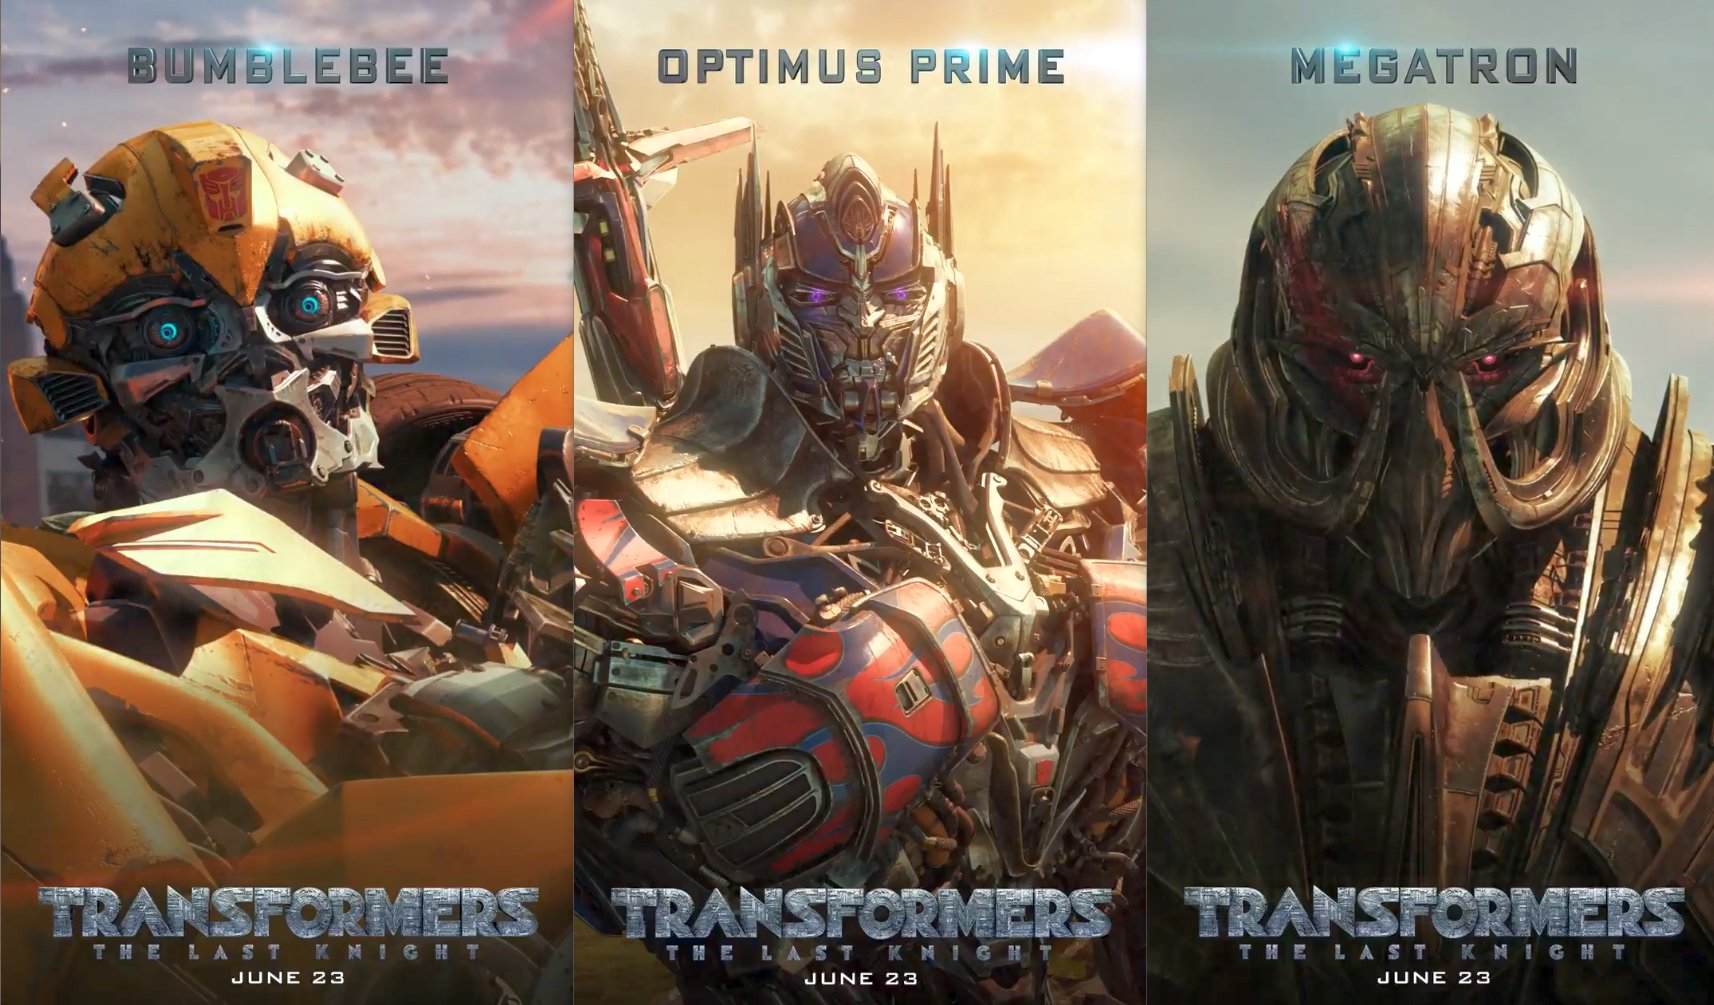 Transformers: The Last Knight Motion Posters Revealed